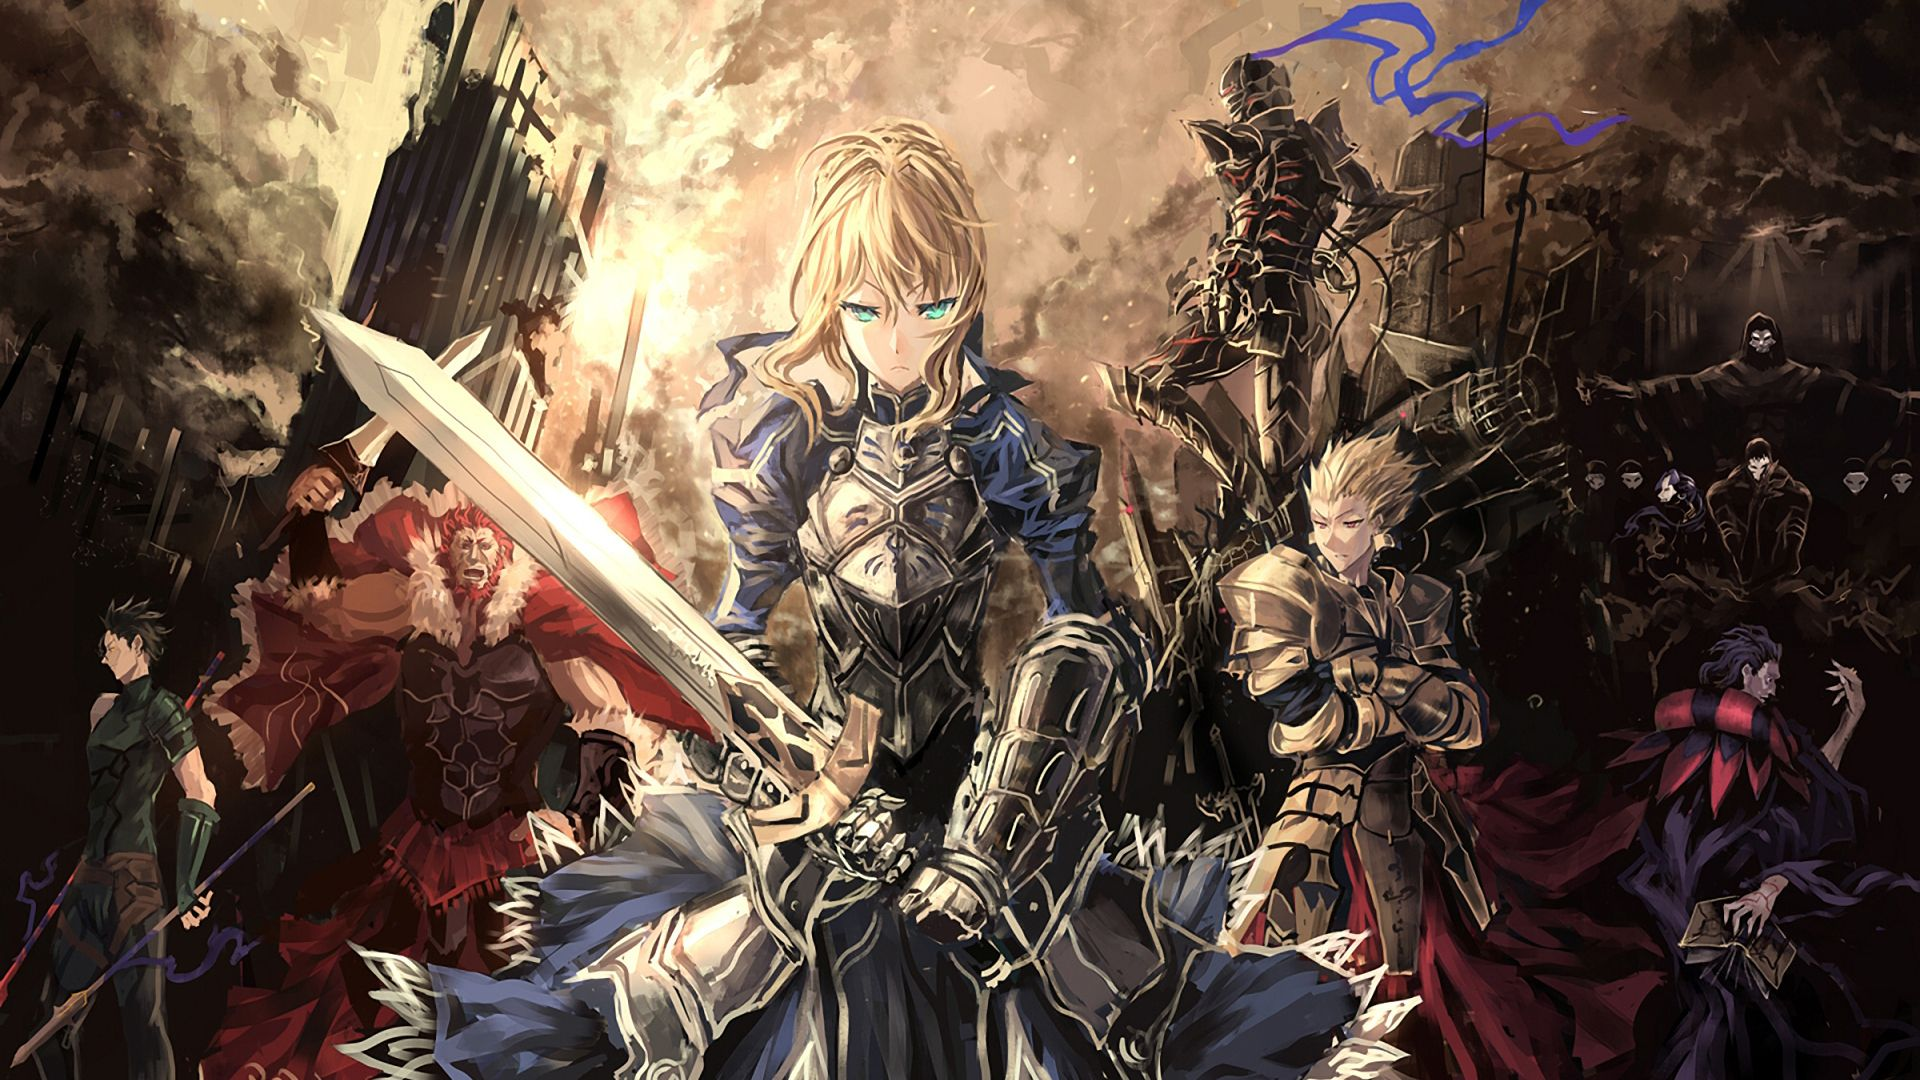 Fate Stay Night Wallpaper Anime Fate Stay Night Anime